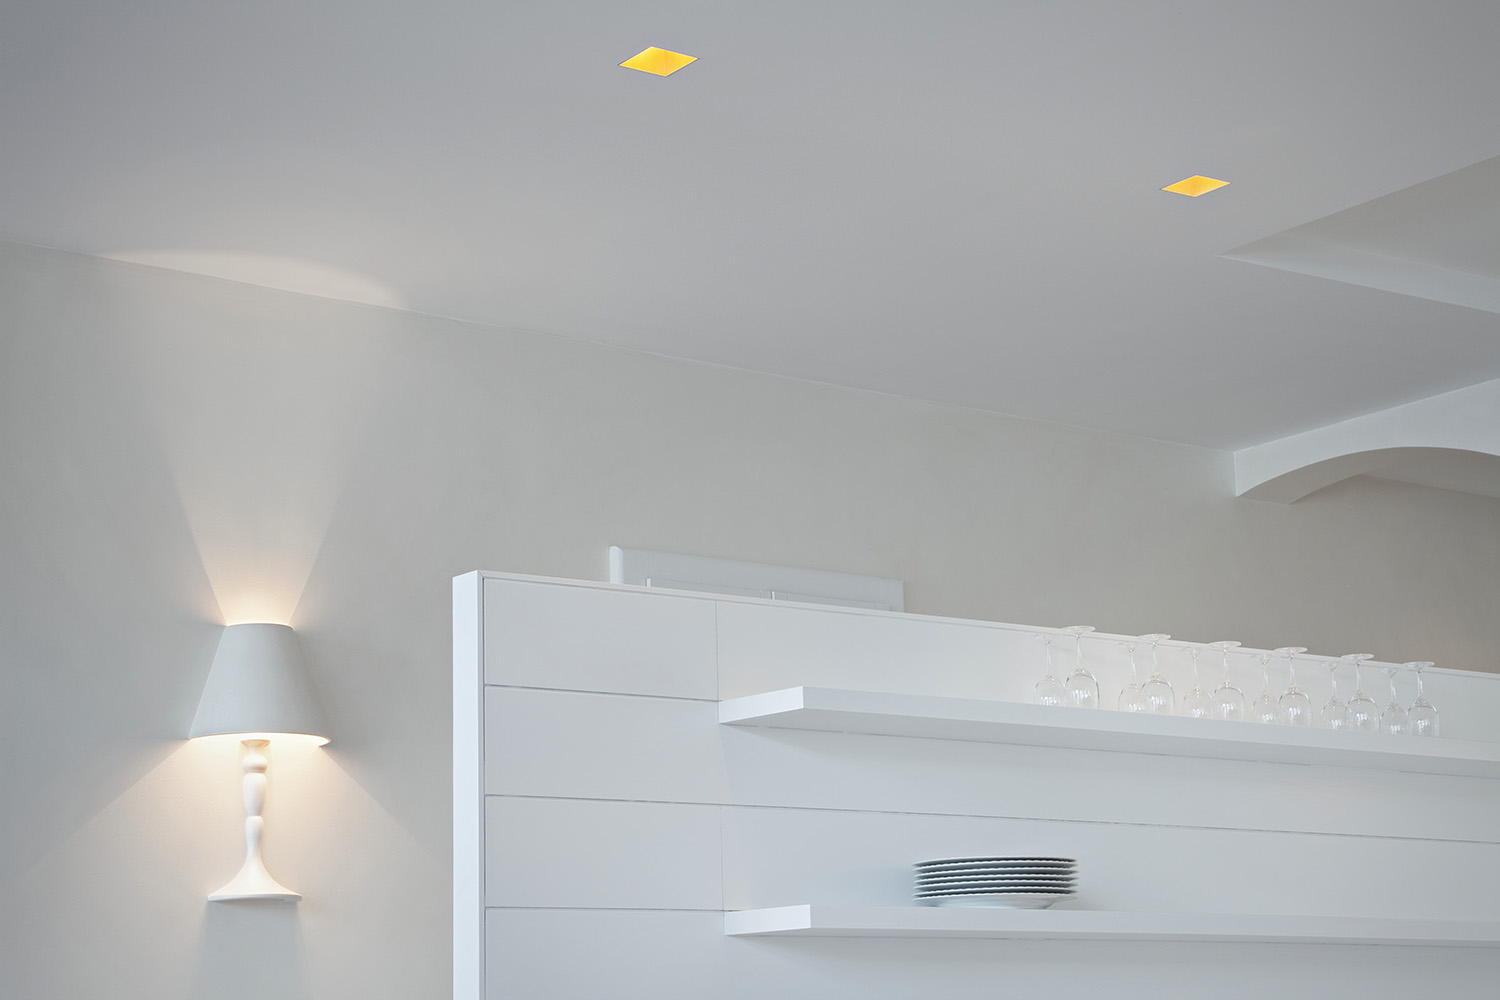 KAP Recessed Commercial Downlights